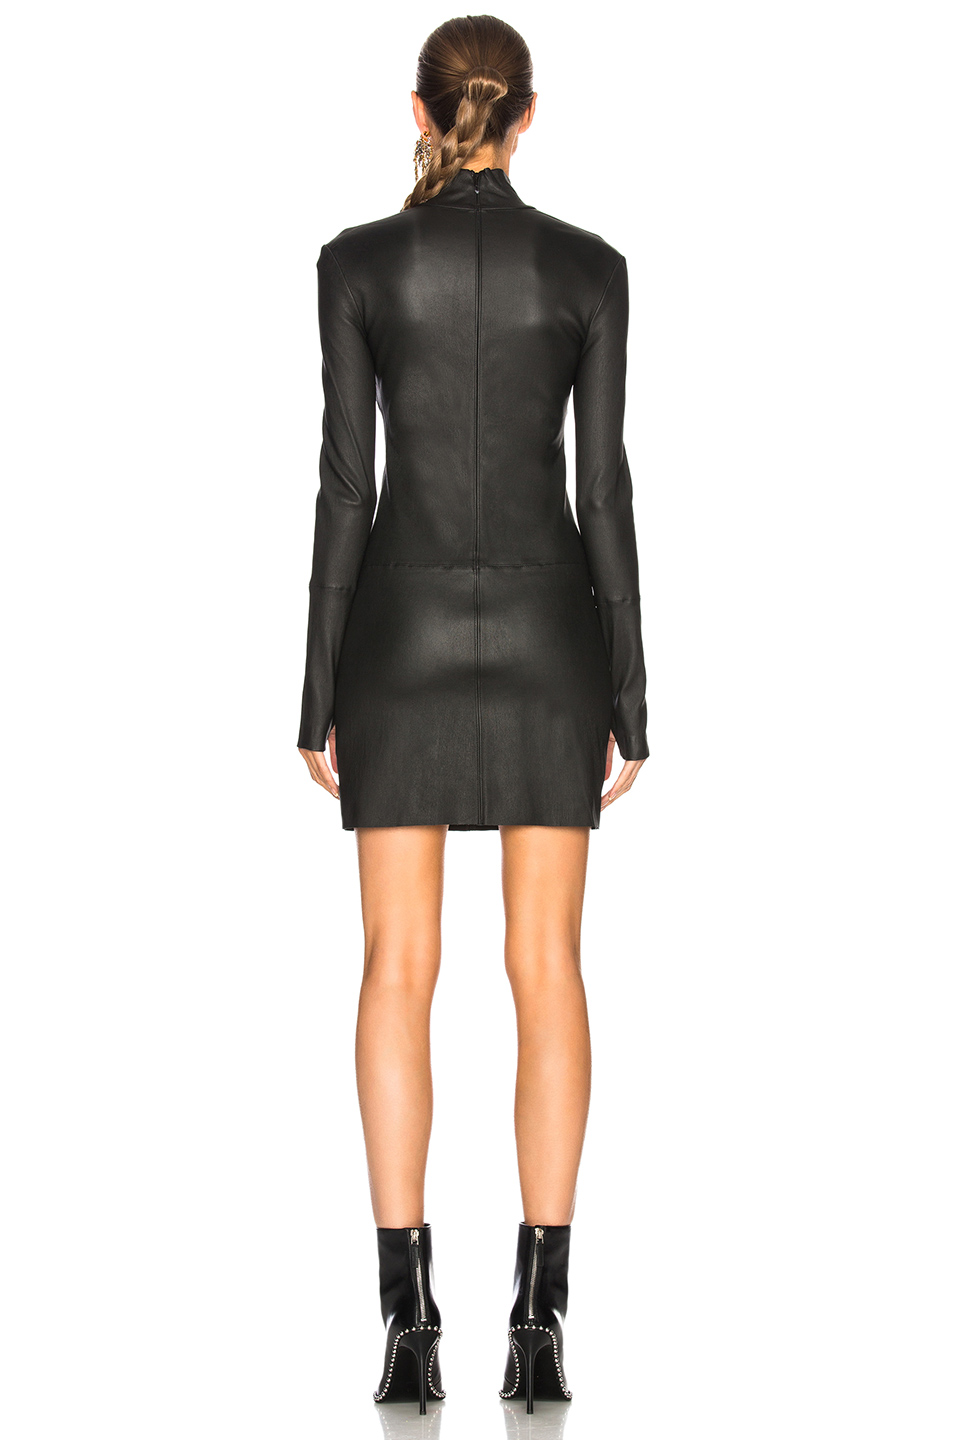 14f11bf4ad3c8 Buy Original Helmut Lang Long Sleeve Leather Dress at Indonesia ...